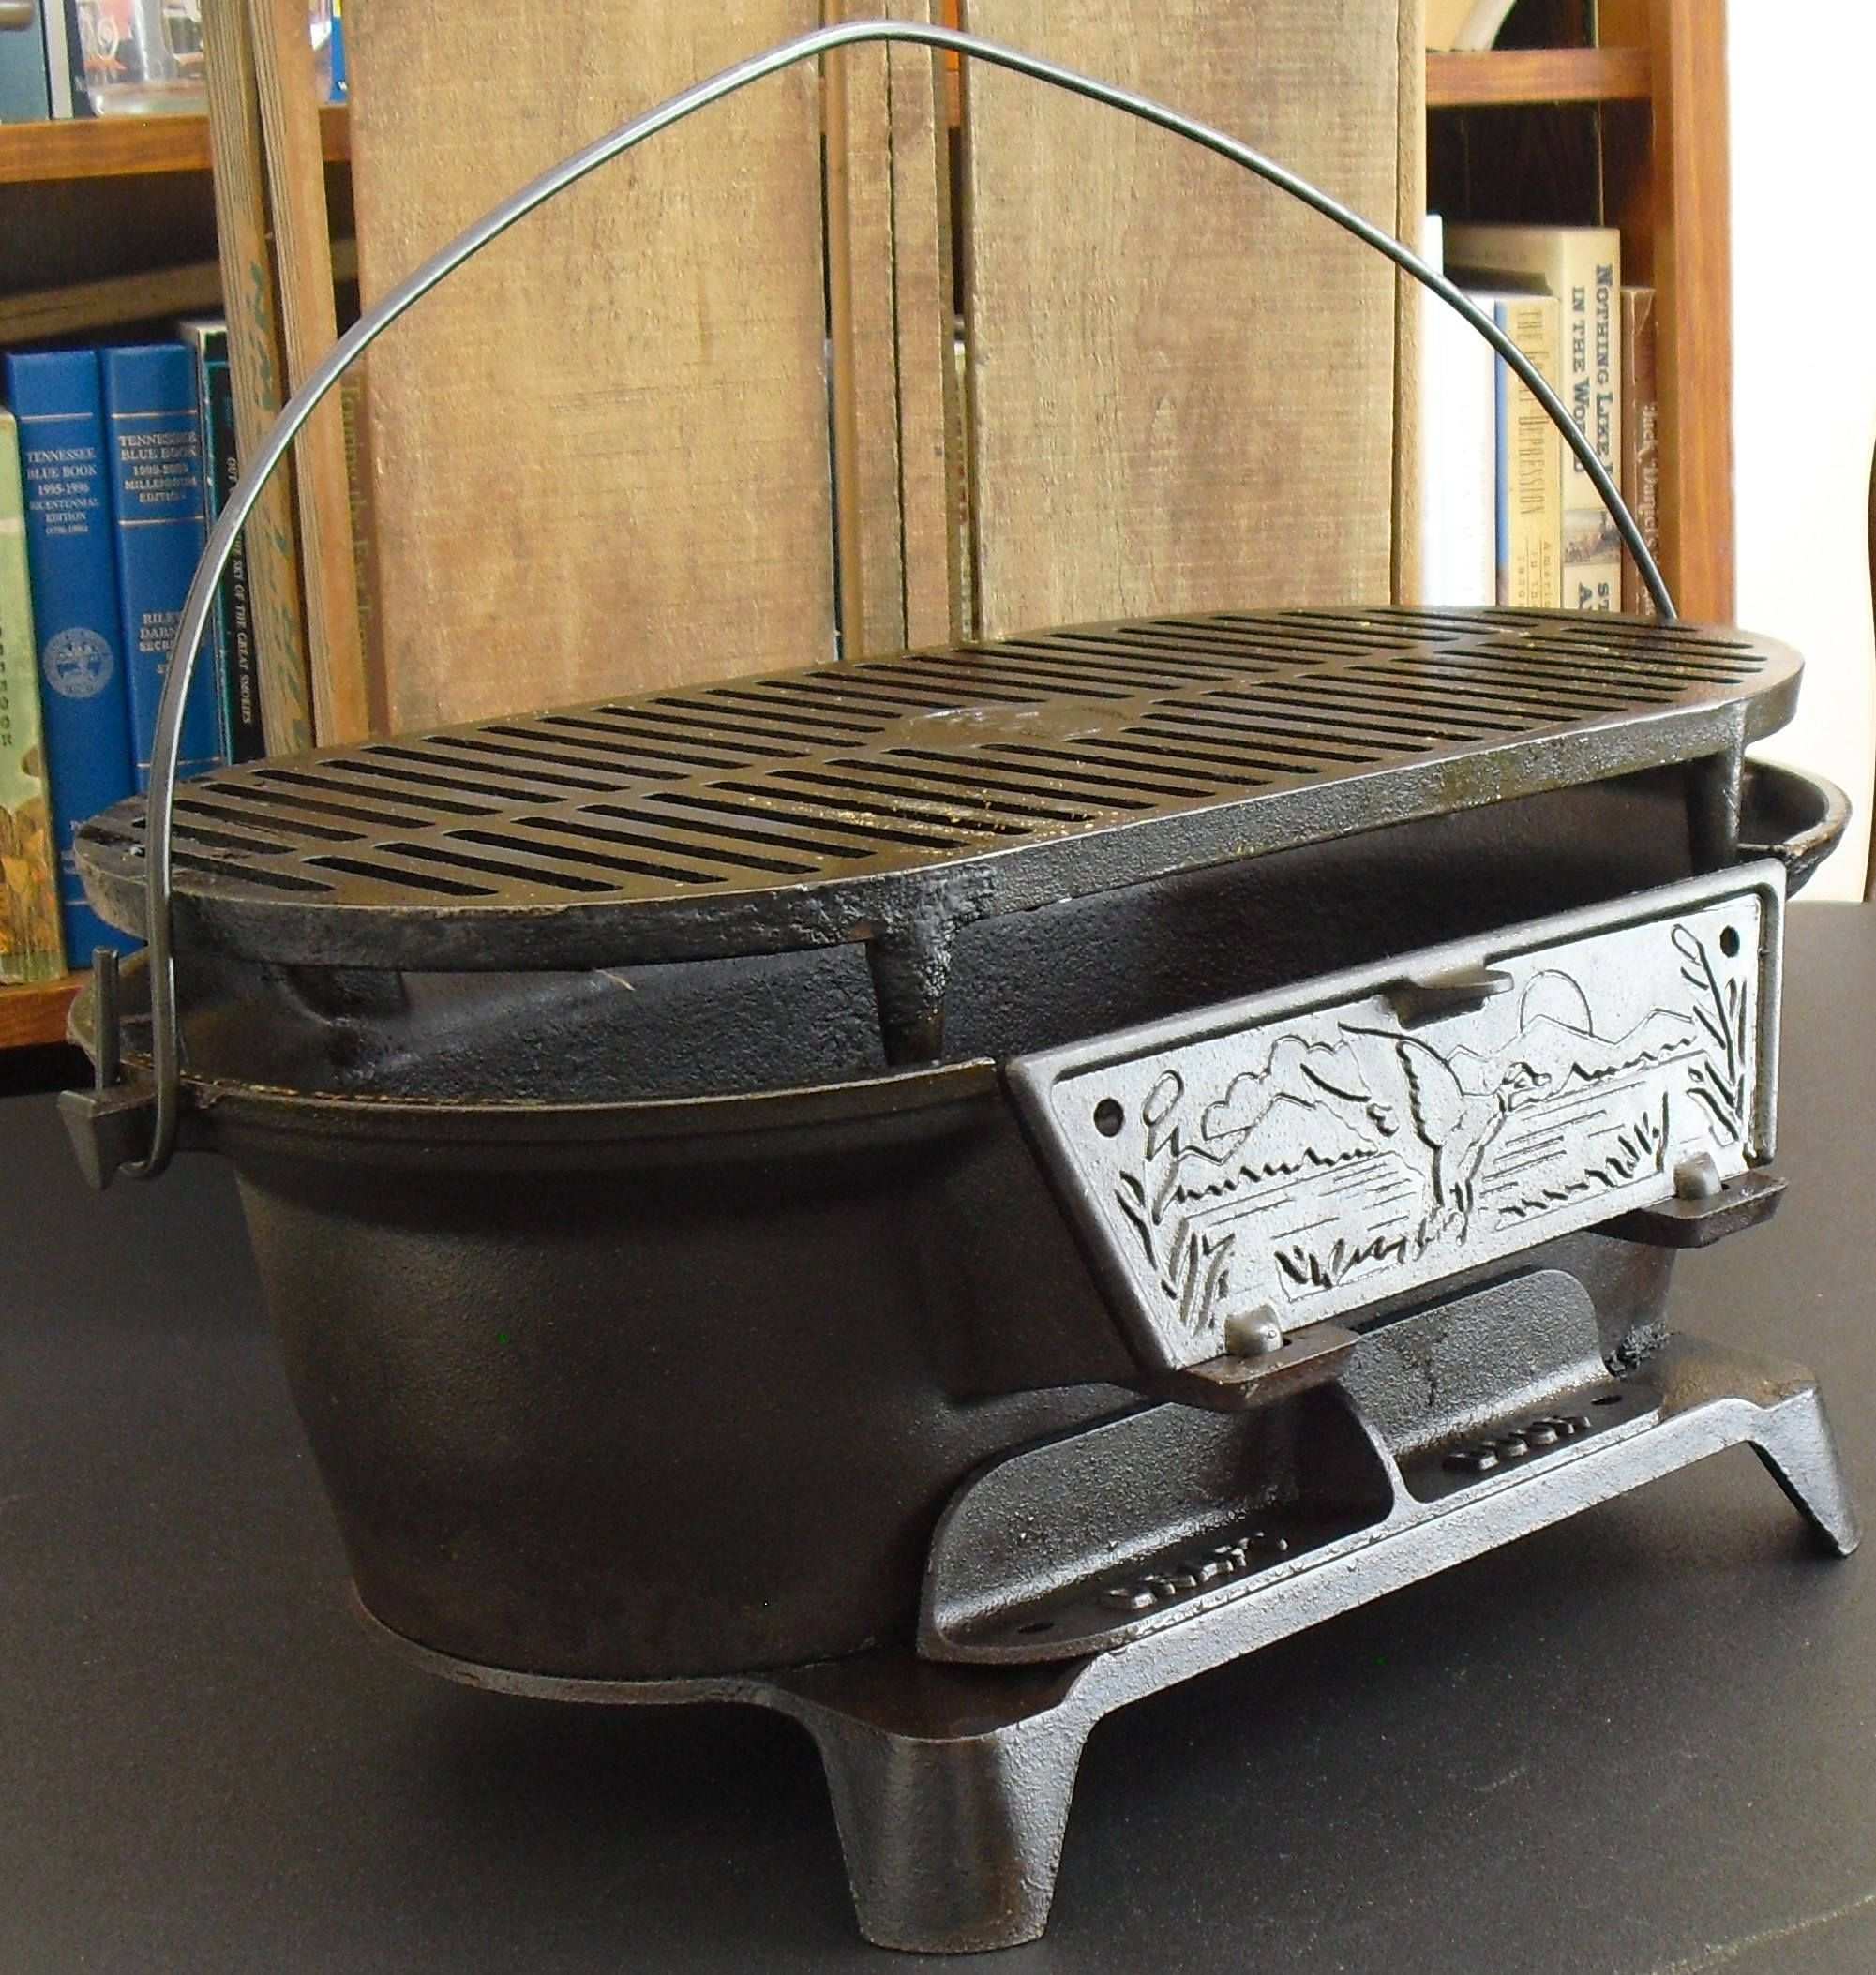 Vintage Lodge Cast Iron Charcoal Sportsman Hibachi Grill, American  Wildlife, Portable Stove